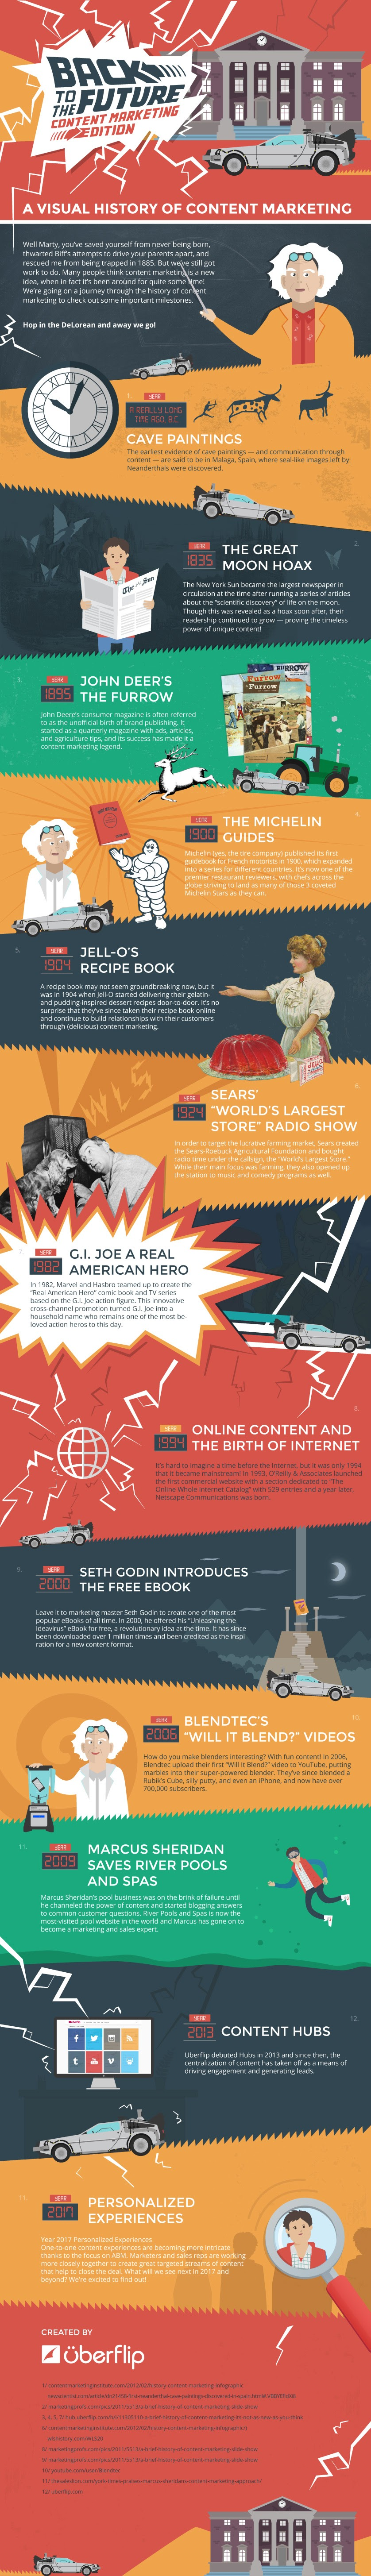 A Visual History of Content Marketing #Infographic